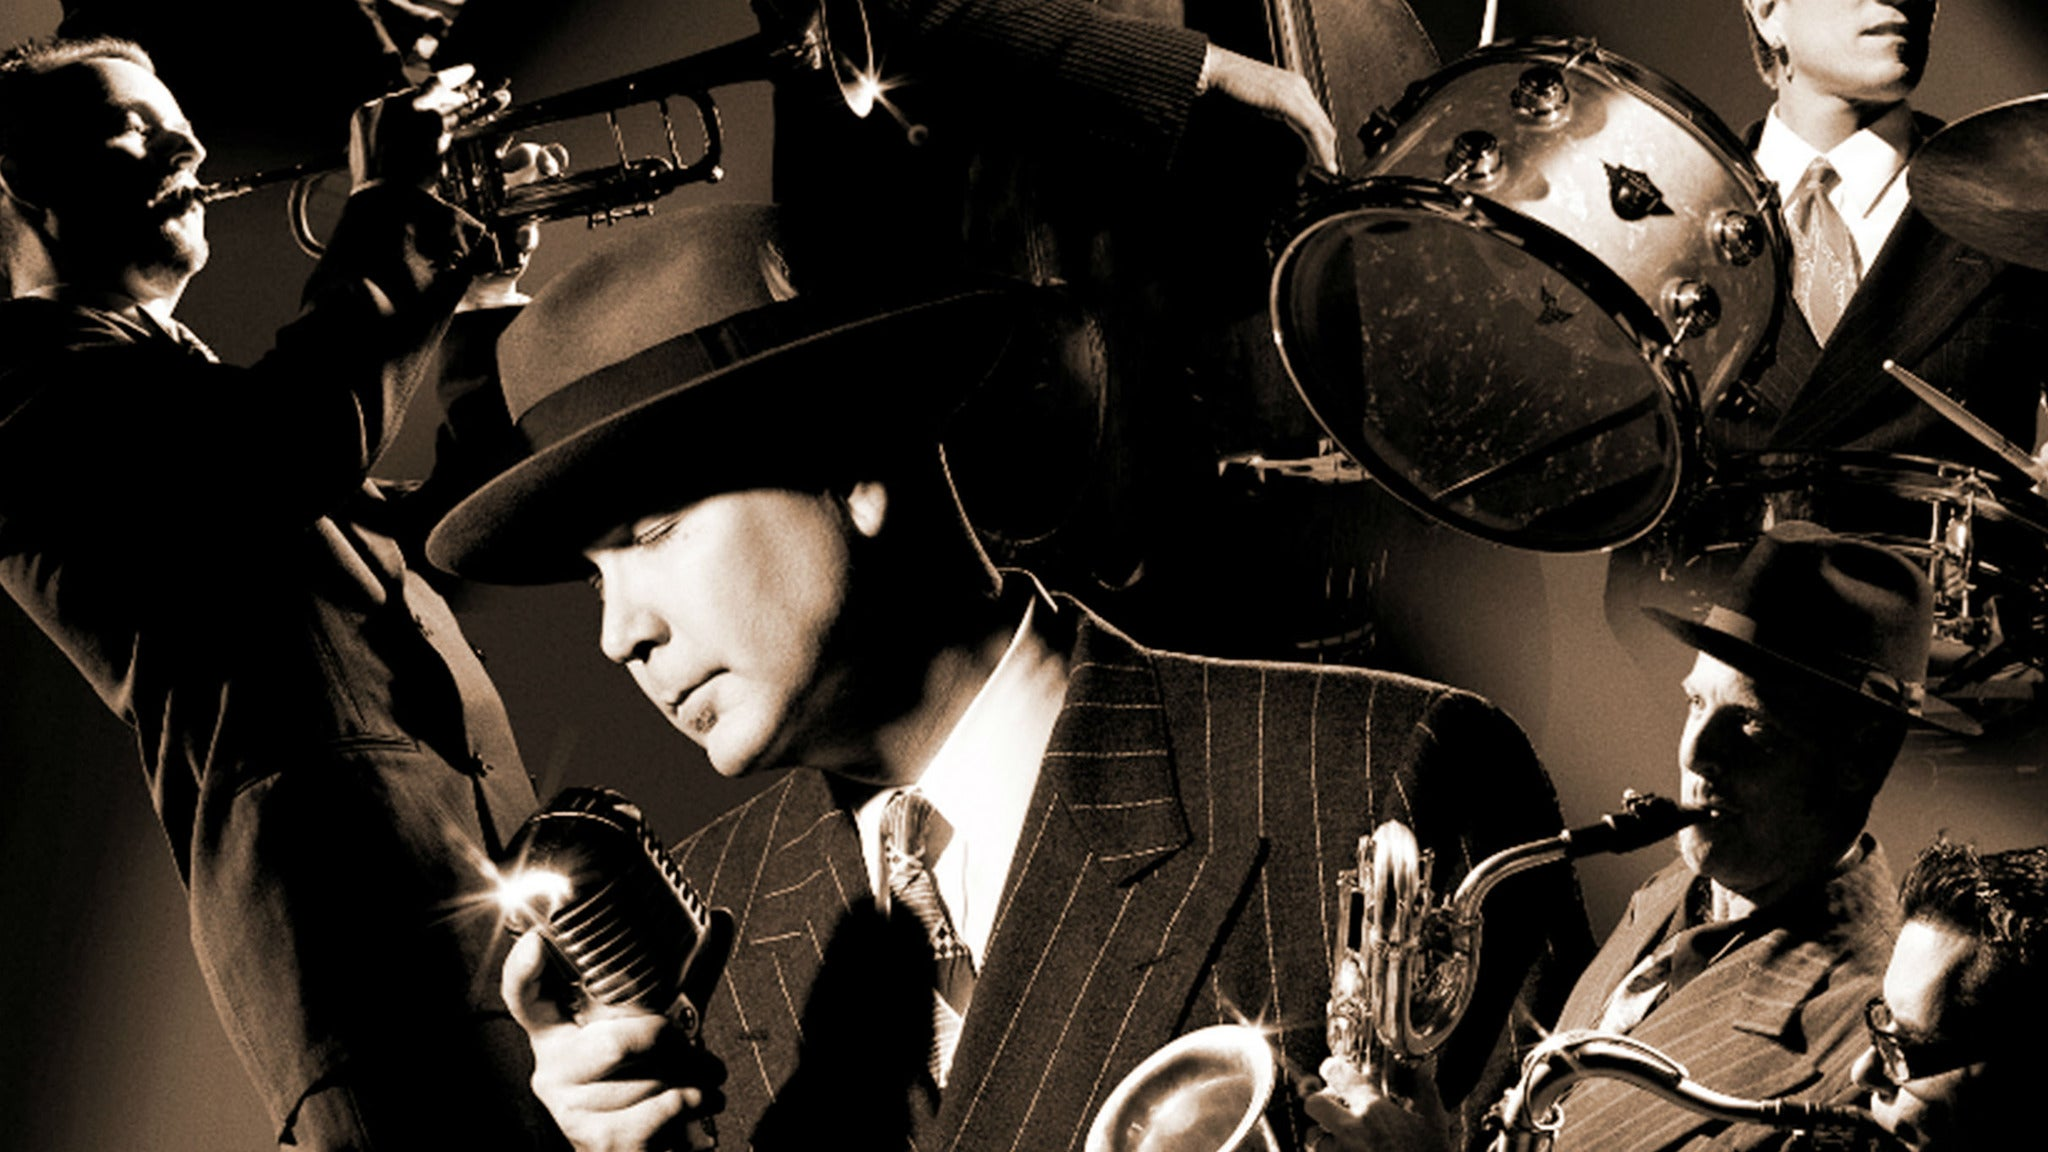 Big Bad Voodoo Daddy at Ridgefield Playhouse